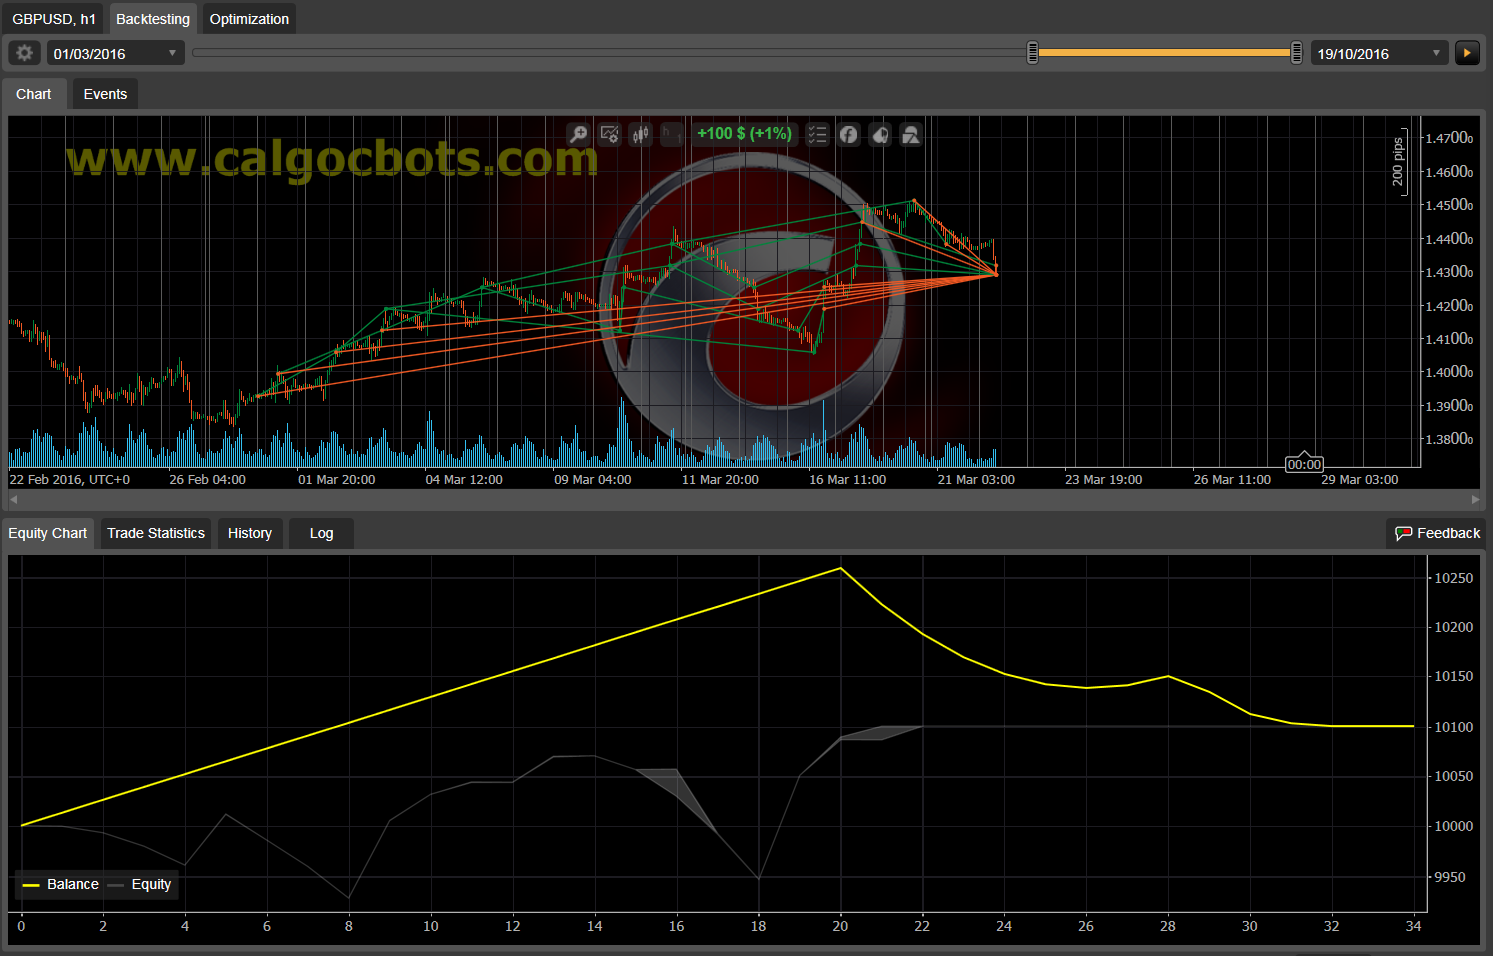 Dual Grid Hedge GBP USD 1h cAlgo cBots cTrader 1k 100 50 100 - 08 a